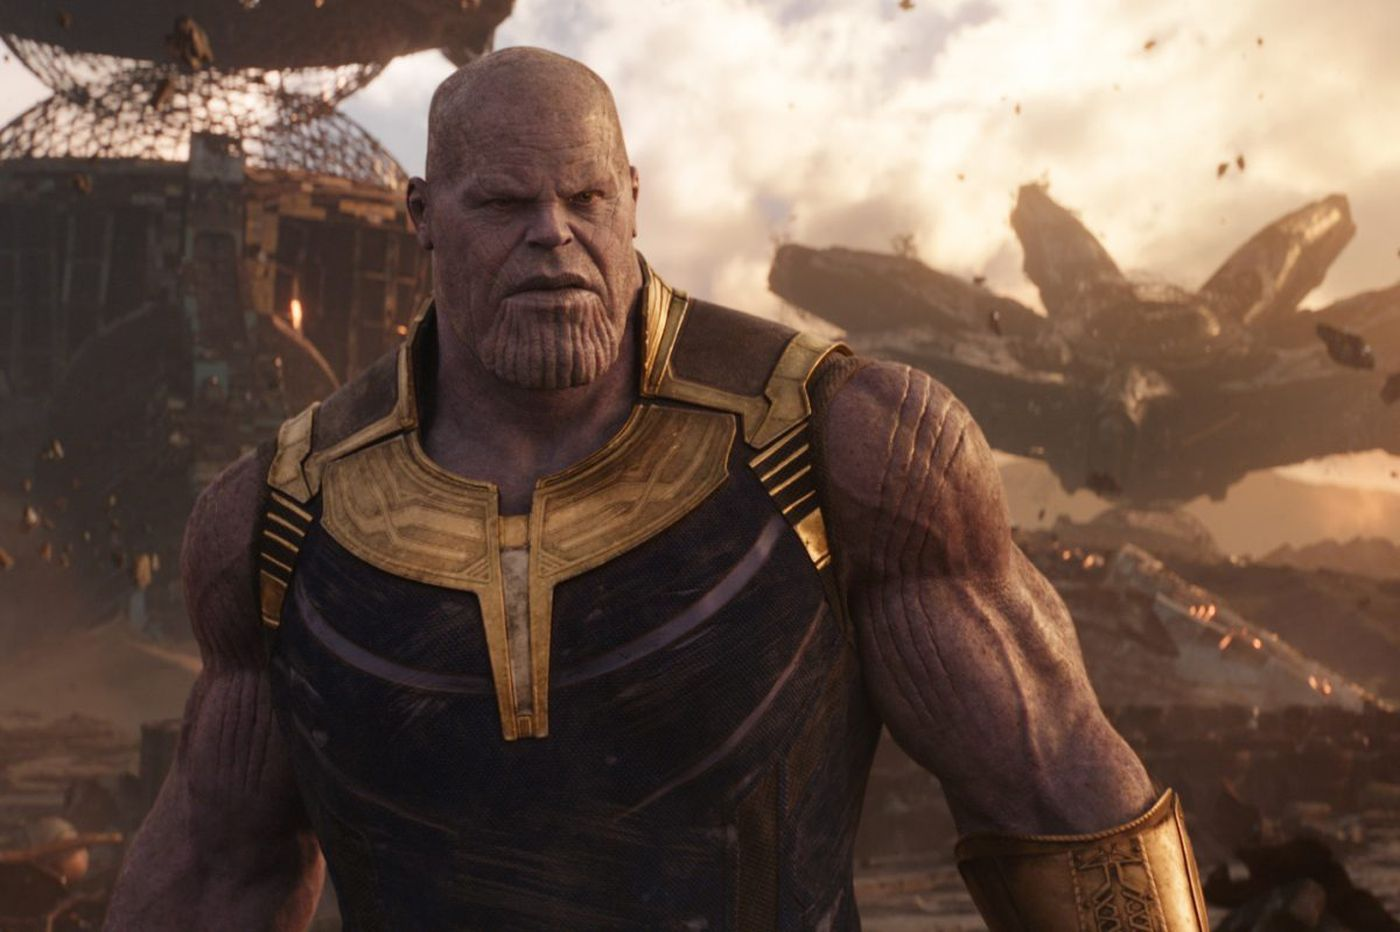 What are the infinity stones that drive the plot of 'Avengers: Infinity War'?